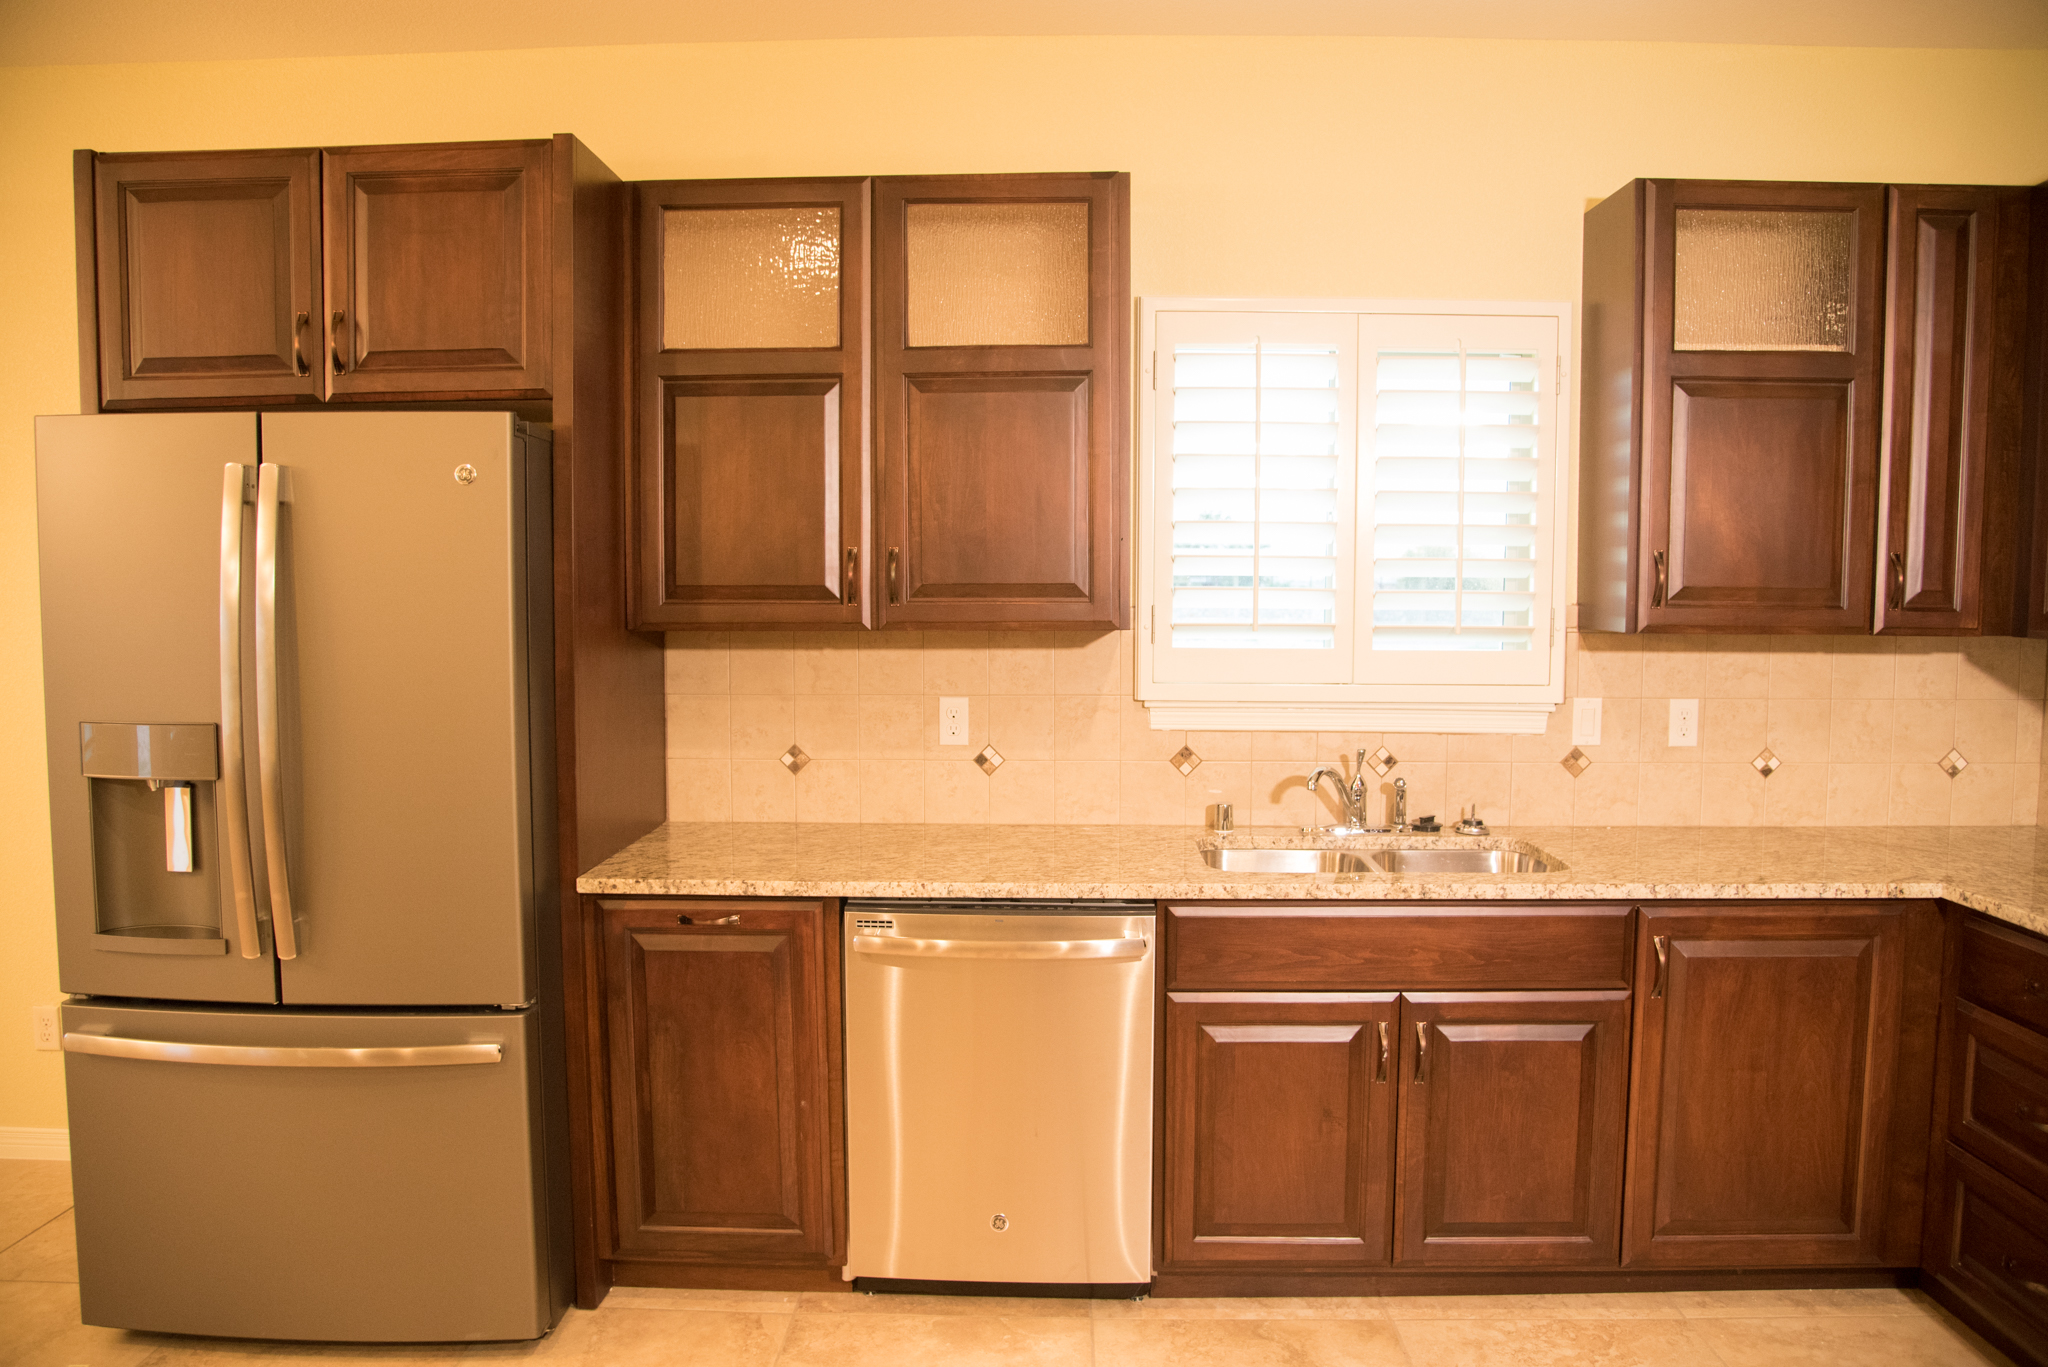 Kitchen cabinets national kitchen cabinets national for Kitchen cabinets el paso tx